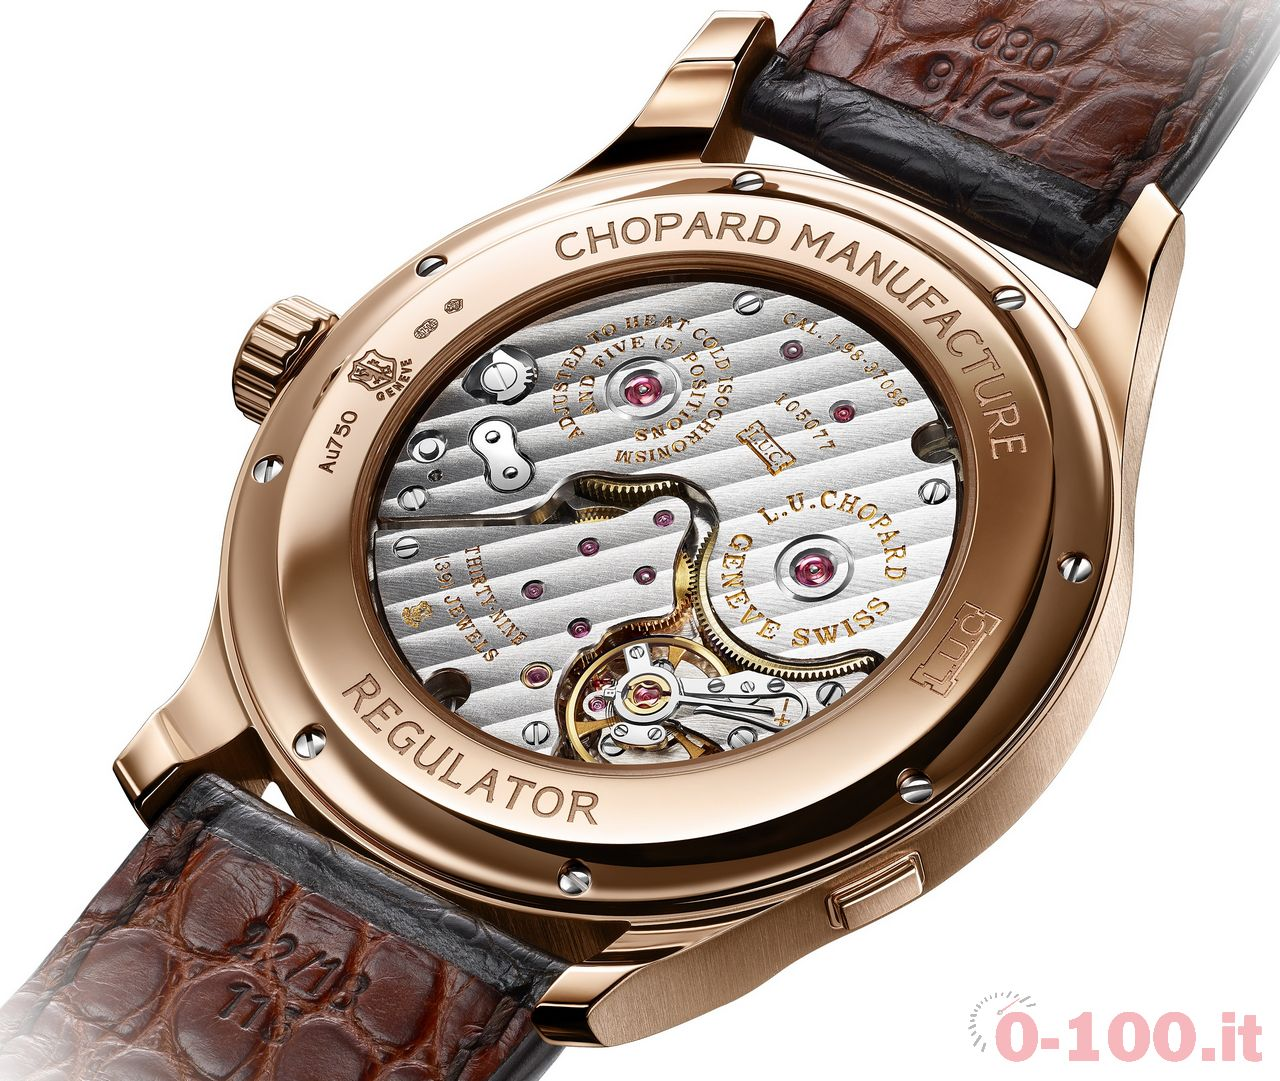 anteprima-baselworld-2015-chopard-l-u-c-regulator-ref-161971-5001-prezzo-price_0-100_3